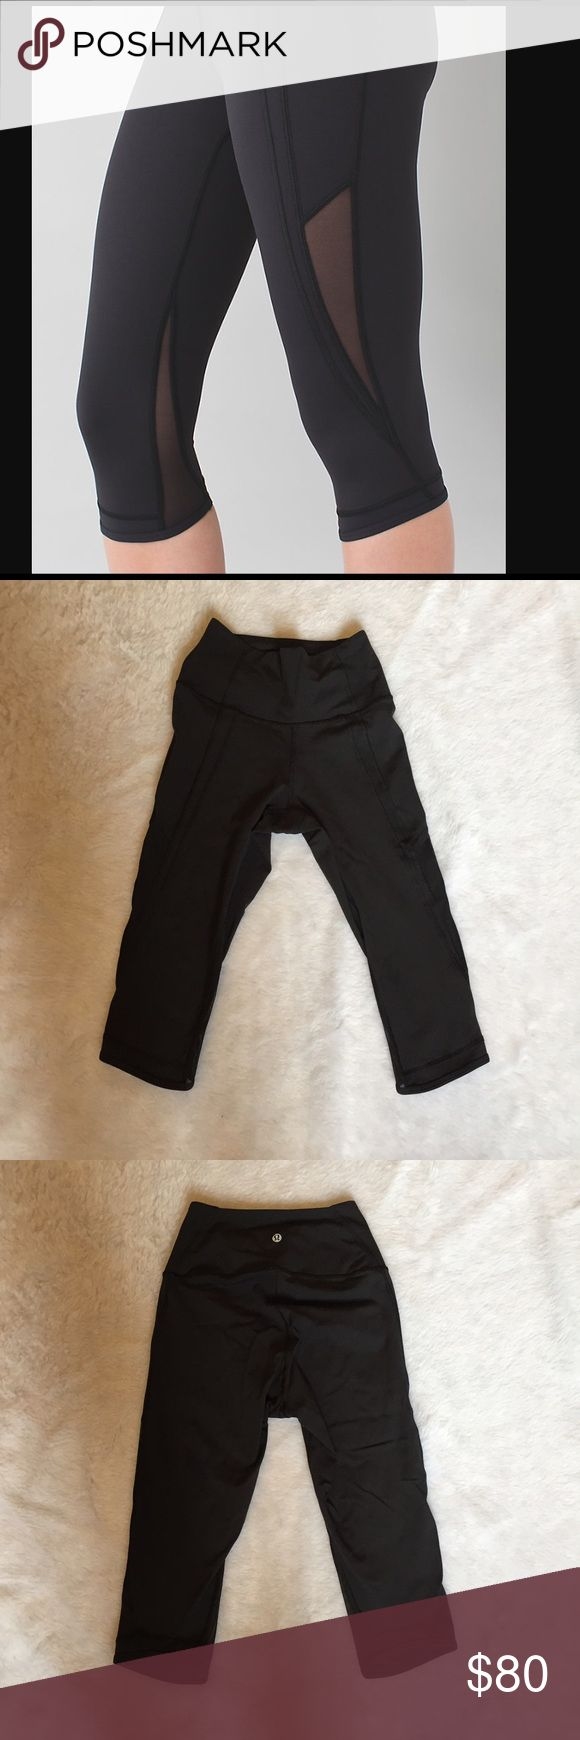 Lululemon drop it like its hot crops 🎀 lululemon crops 🎀 Size 4 🎀 worn a couple times 🎀 black with mesh 🎀Please ask for additional pictures, measurements, or ask questions before purchase. 🎀No trades or other apps. 🎀Ships next business day, unless noted in my closet  🎀Reasonable offers accepted through the offer button 🎀Five star rating 🎀Bundle for discount lululemon athletica Pants